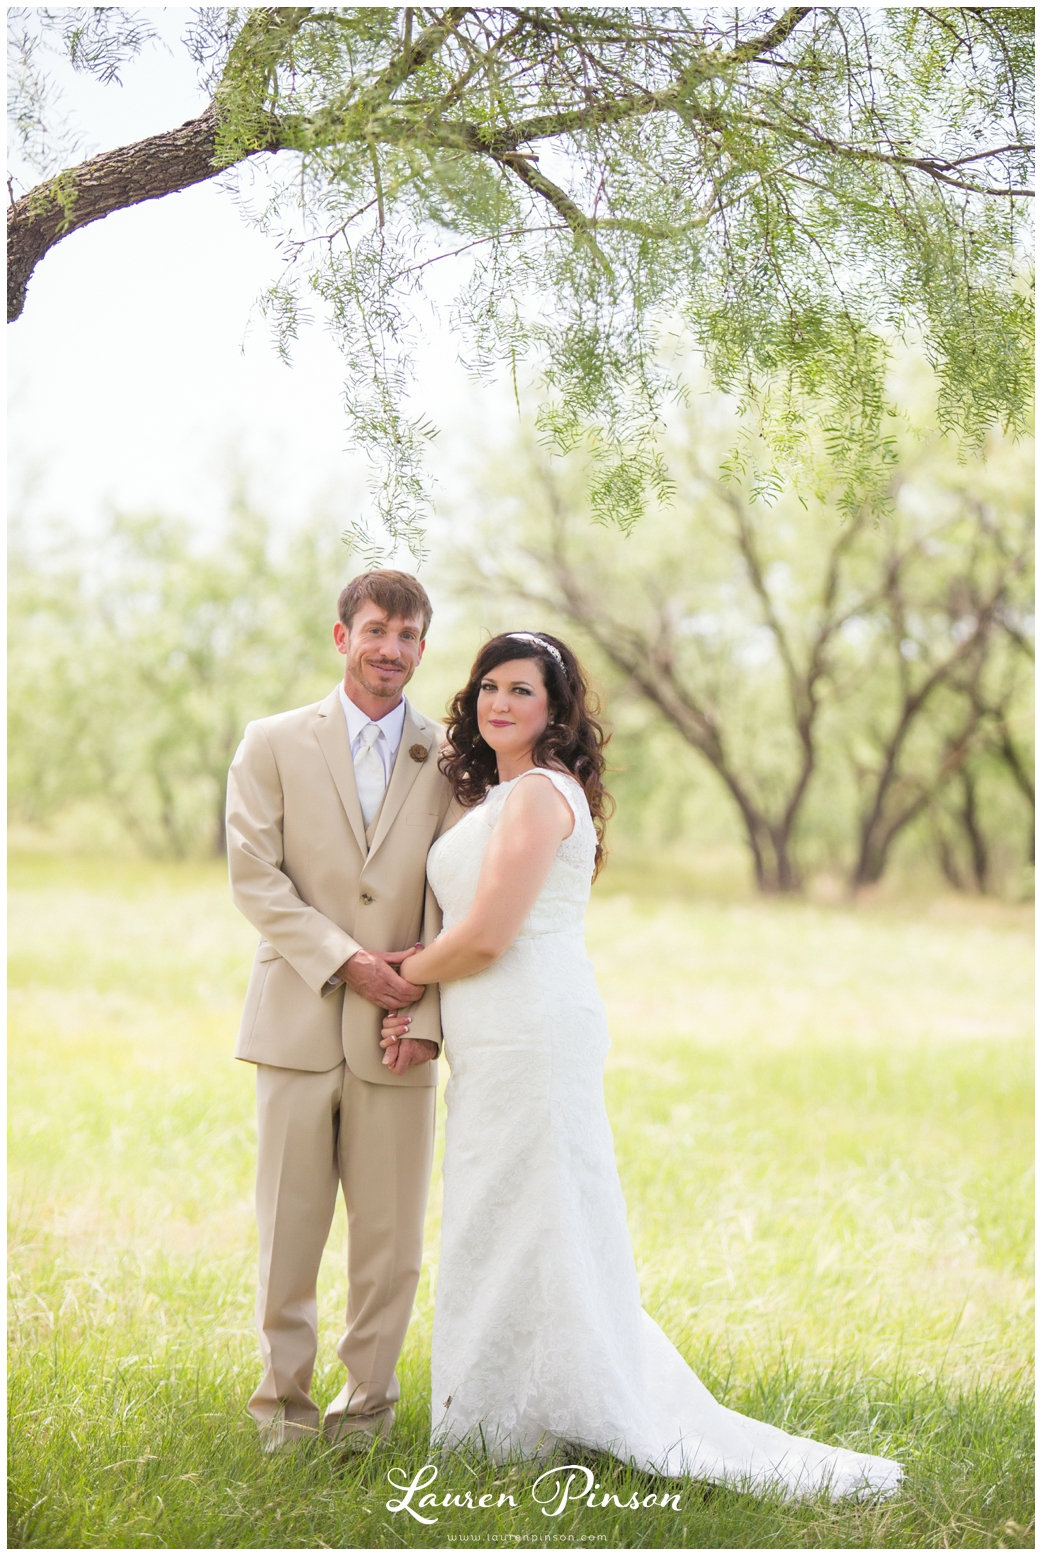 wichita-falls-coyote-ranch-resort-wedding-texas-photography-family-ceremony-balloons-rustic-lace_0311.jpg